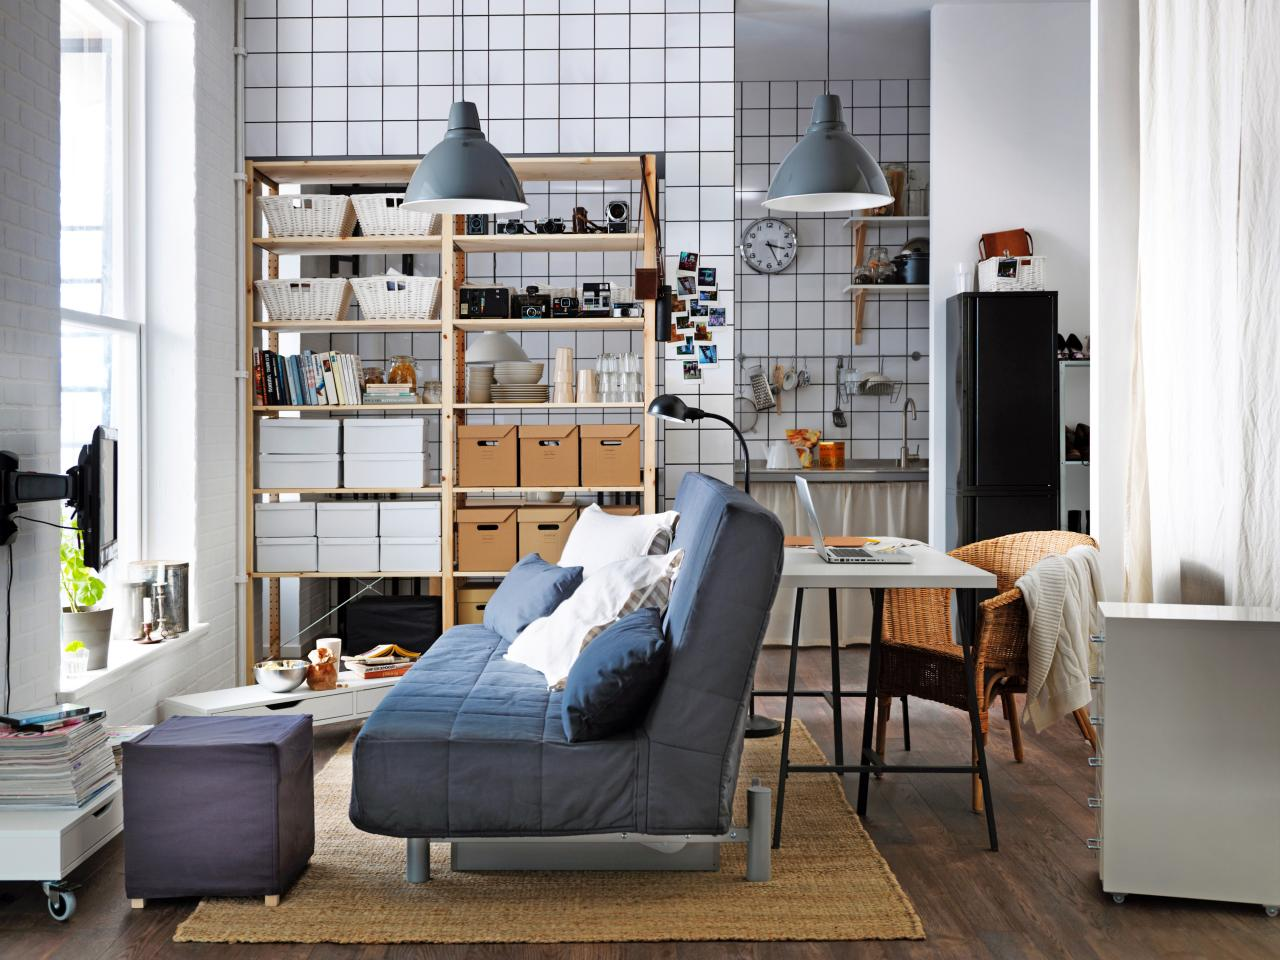 Ikea living room apartment - Use A Bookshelf As A Room Divider